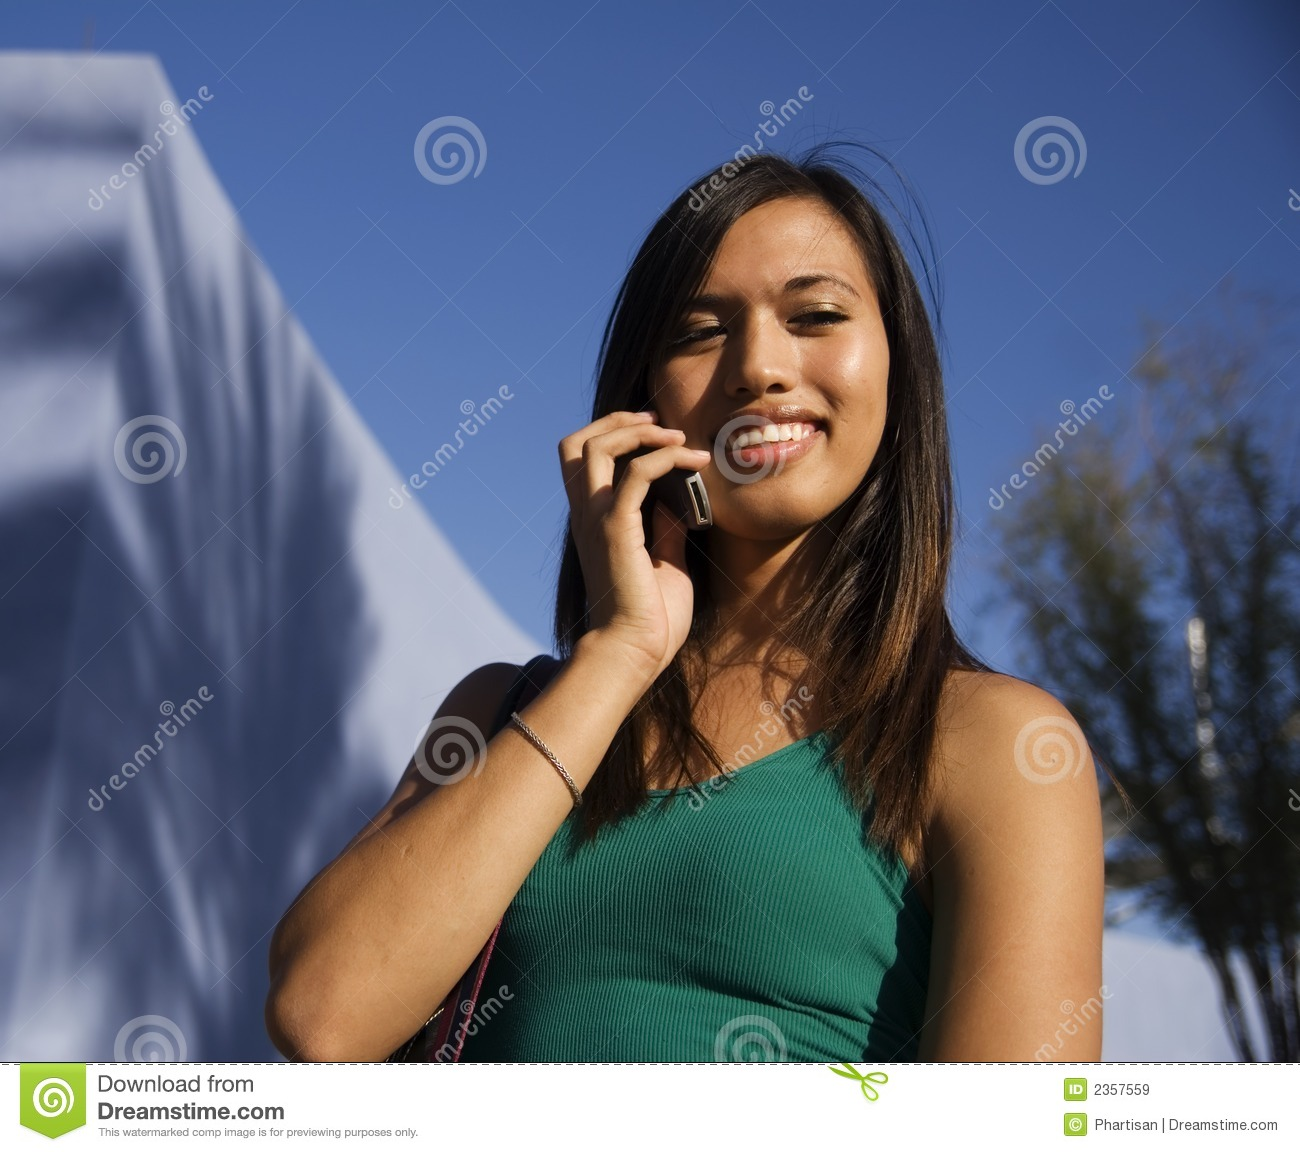 Attractive Young Woman on cell